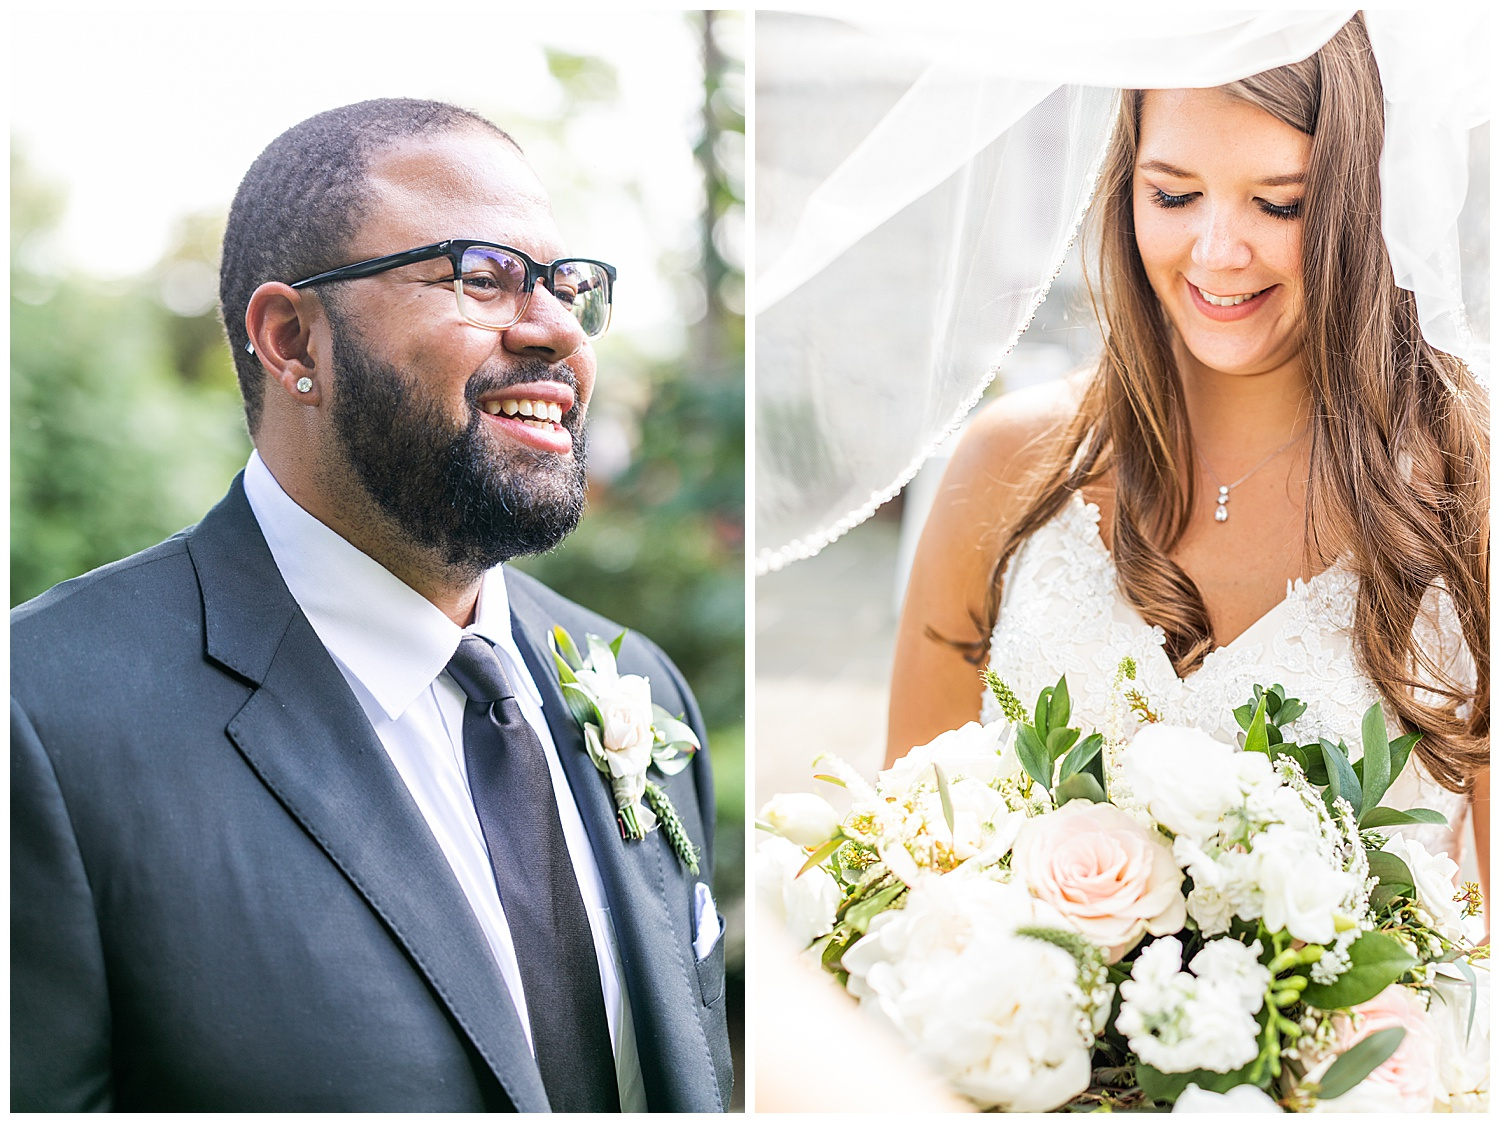 Brittany + Darryl Linwood Estate Wedding Living Radiant Photography photos_0054.jpg